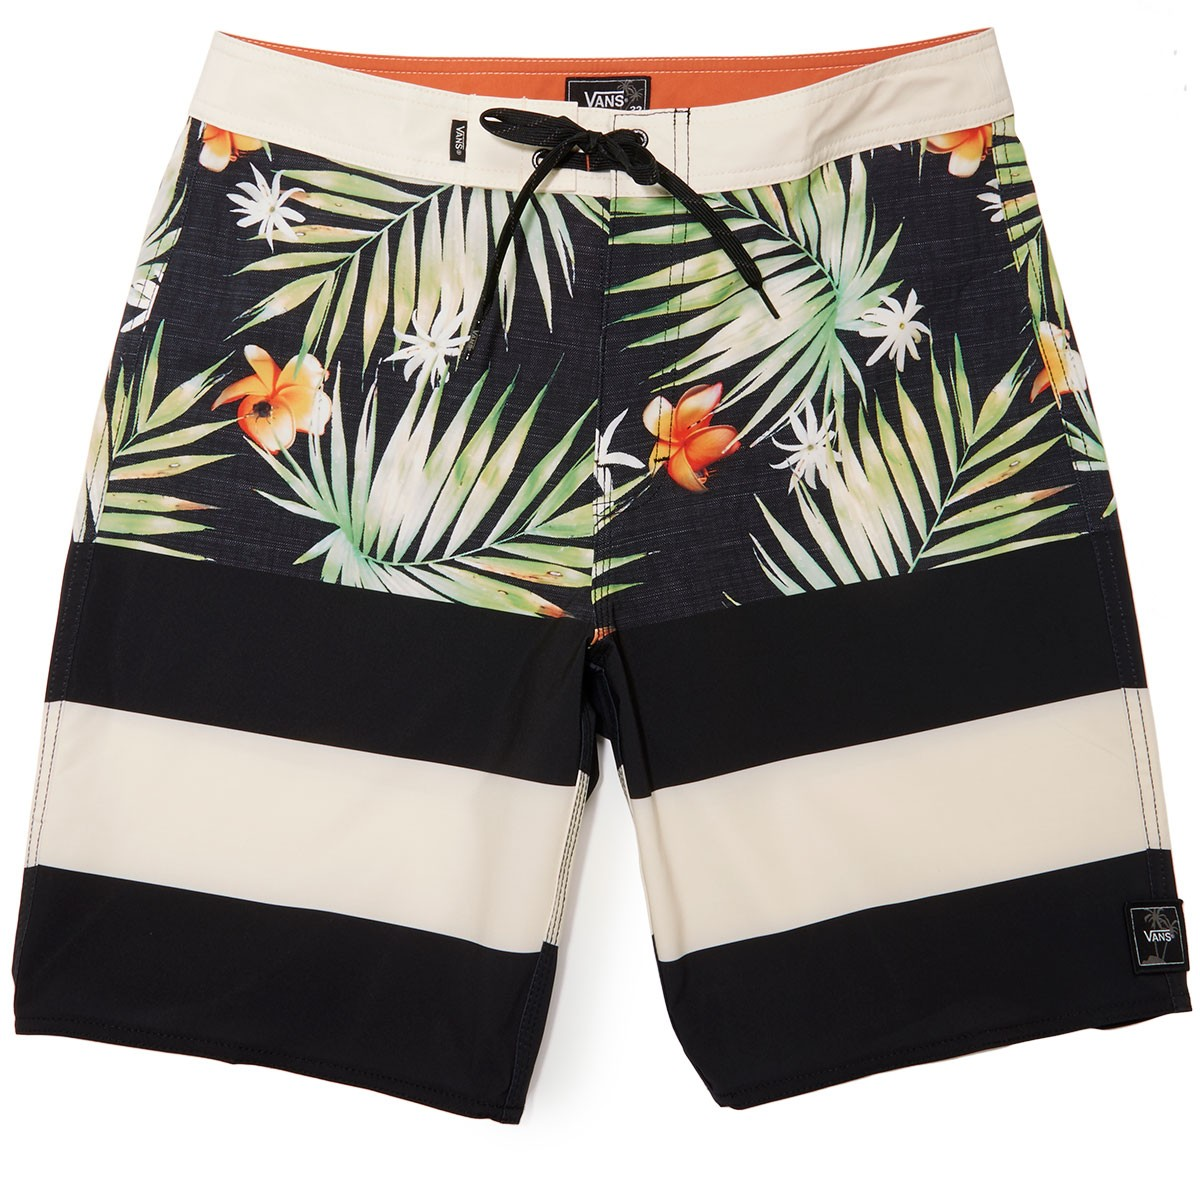 f809cbbc6a6b9 Vans Era Boardshorts - Black Decay Palm